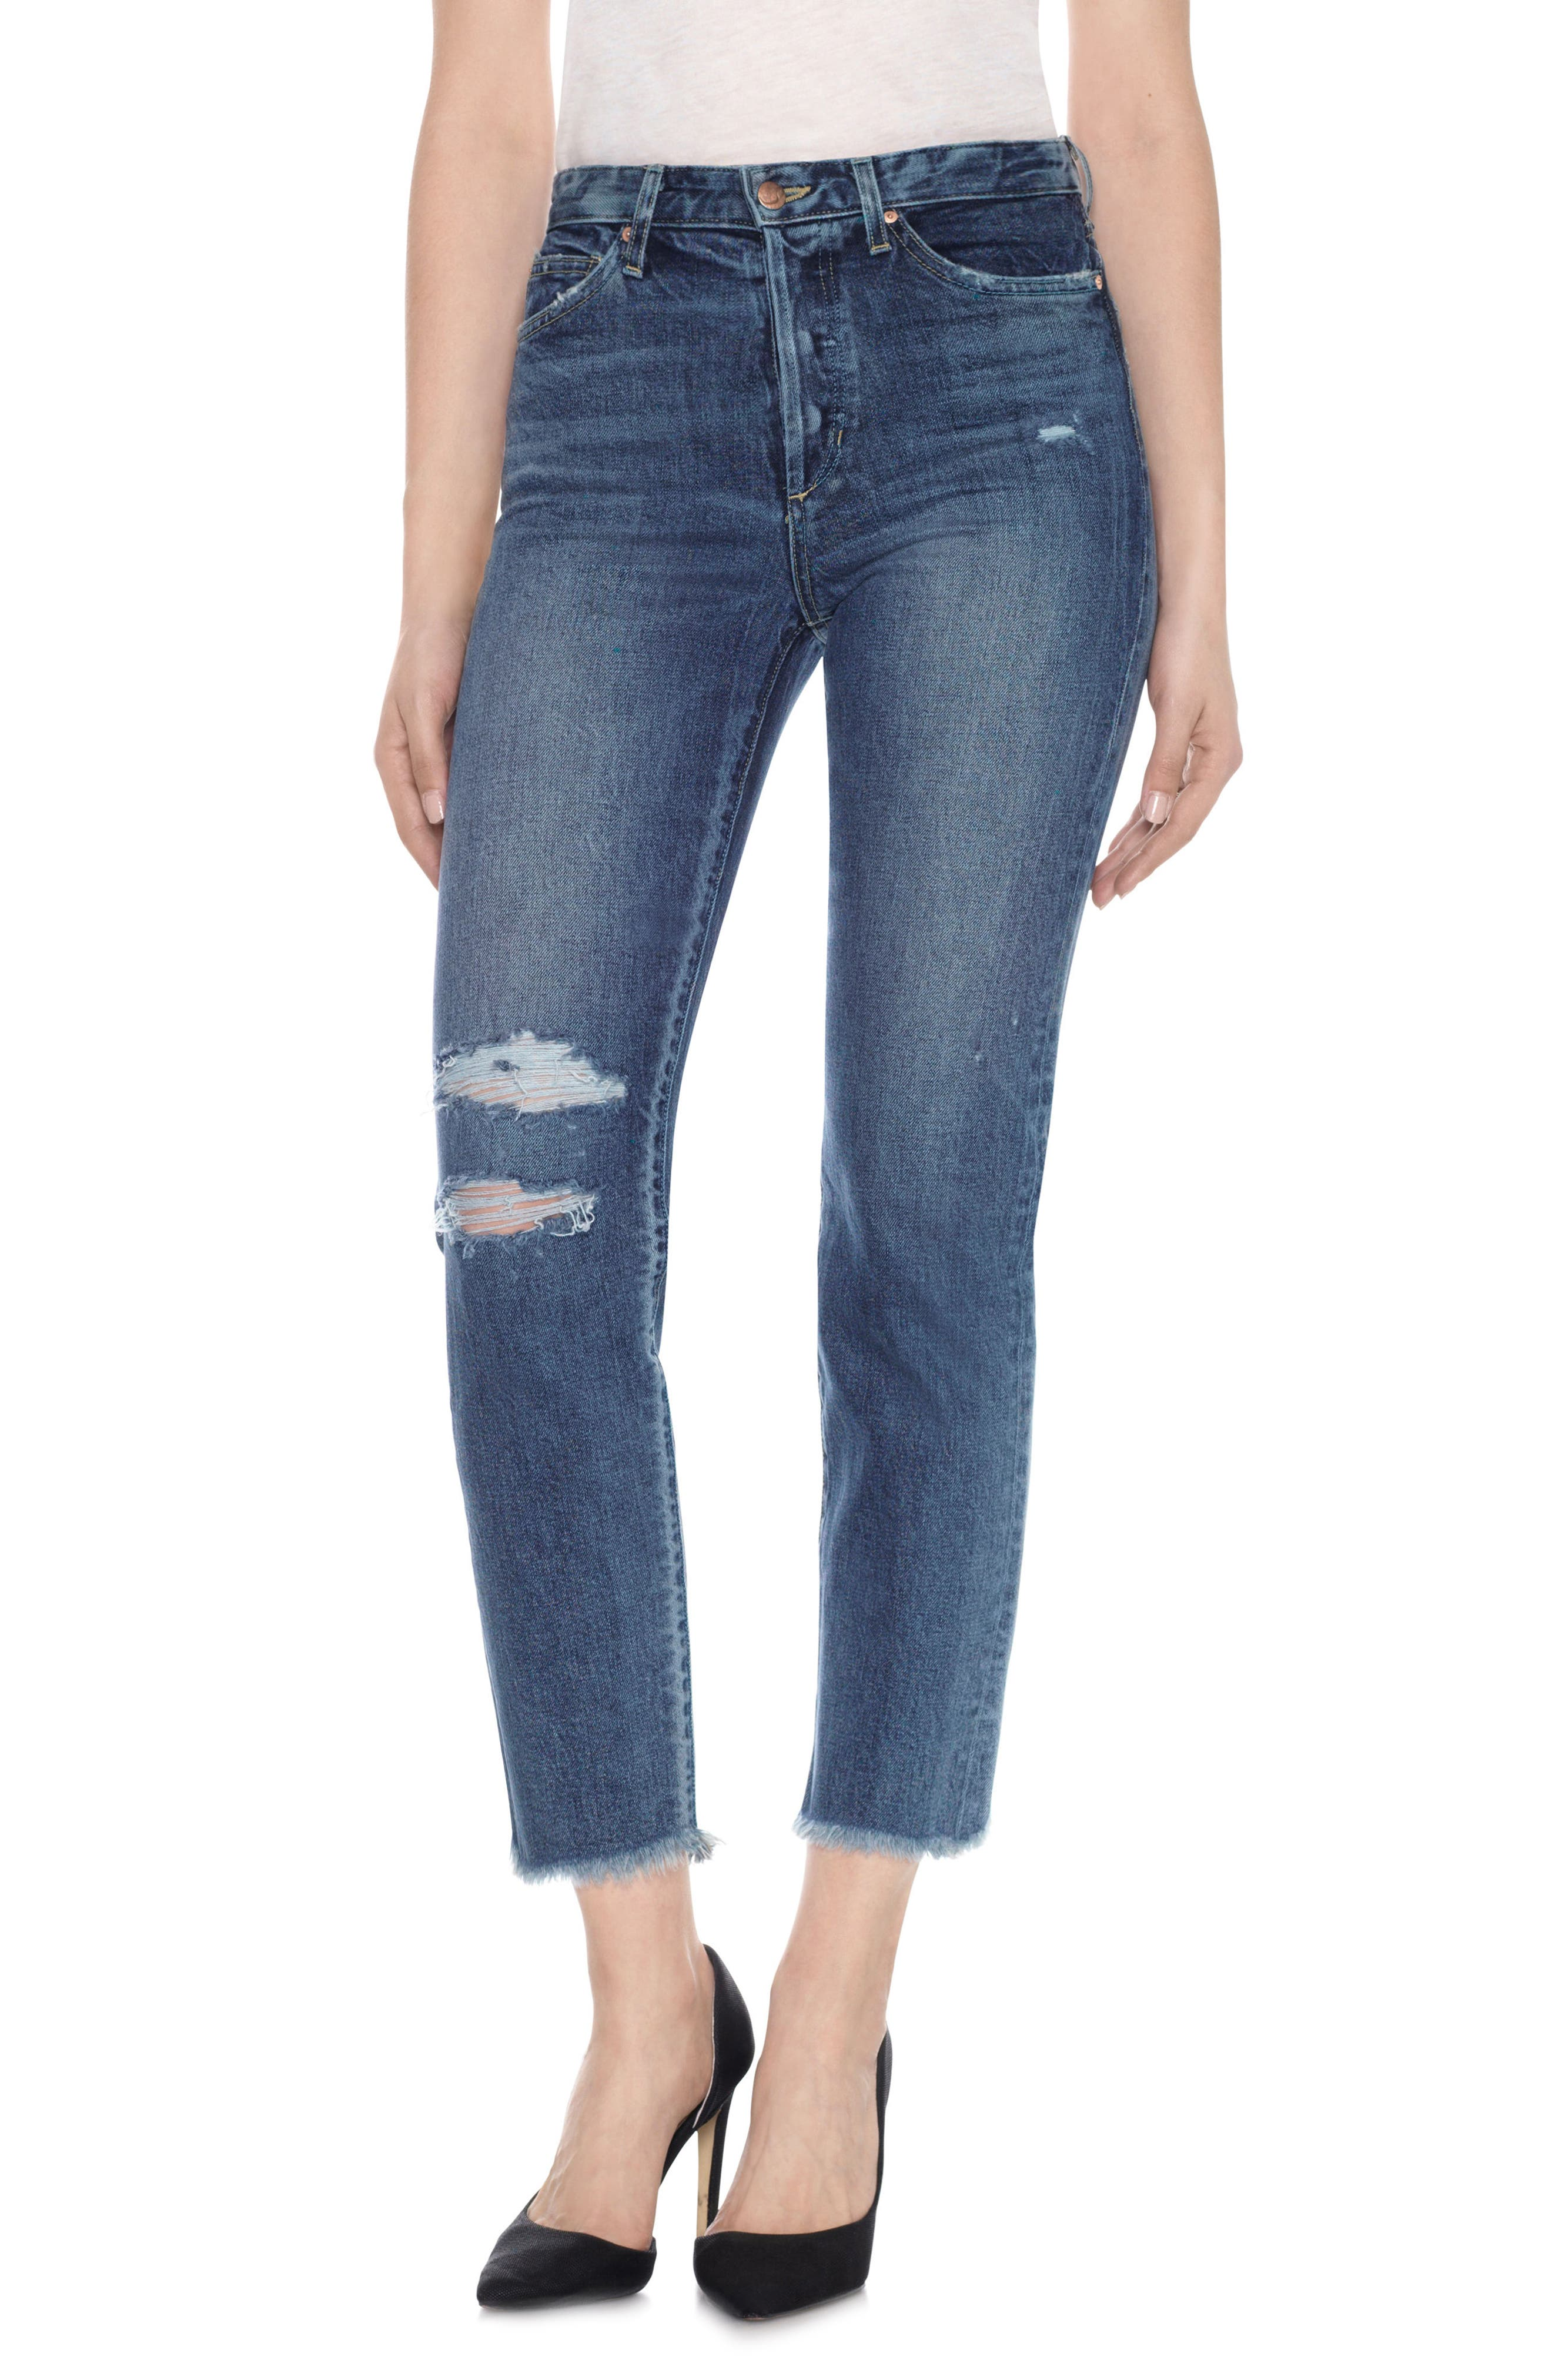 Alternate Image 1 Selected - Taylor Hill x Joe's Debbie High Rise Ankle Jeans (Julee)